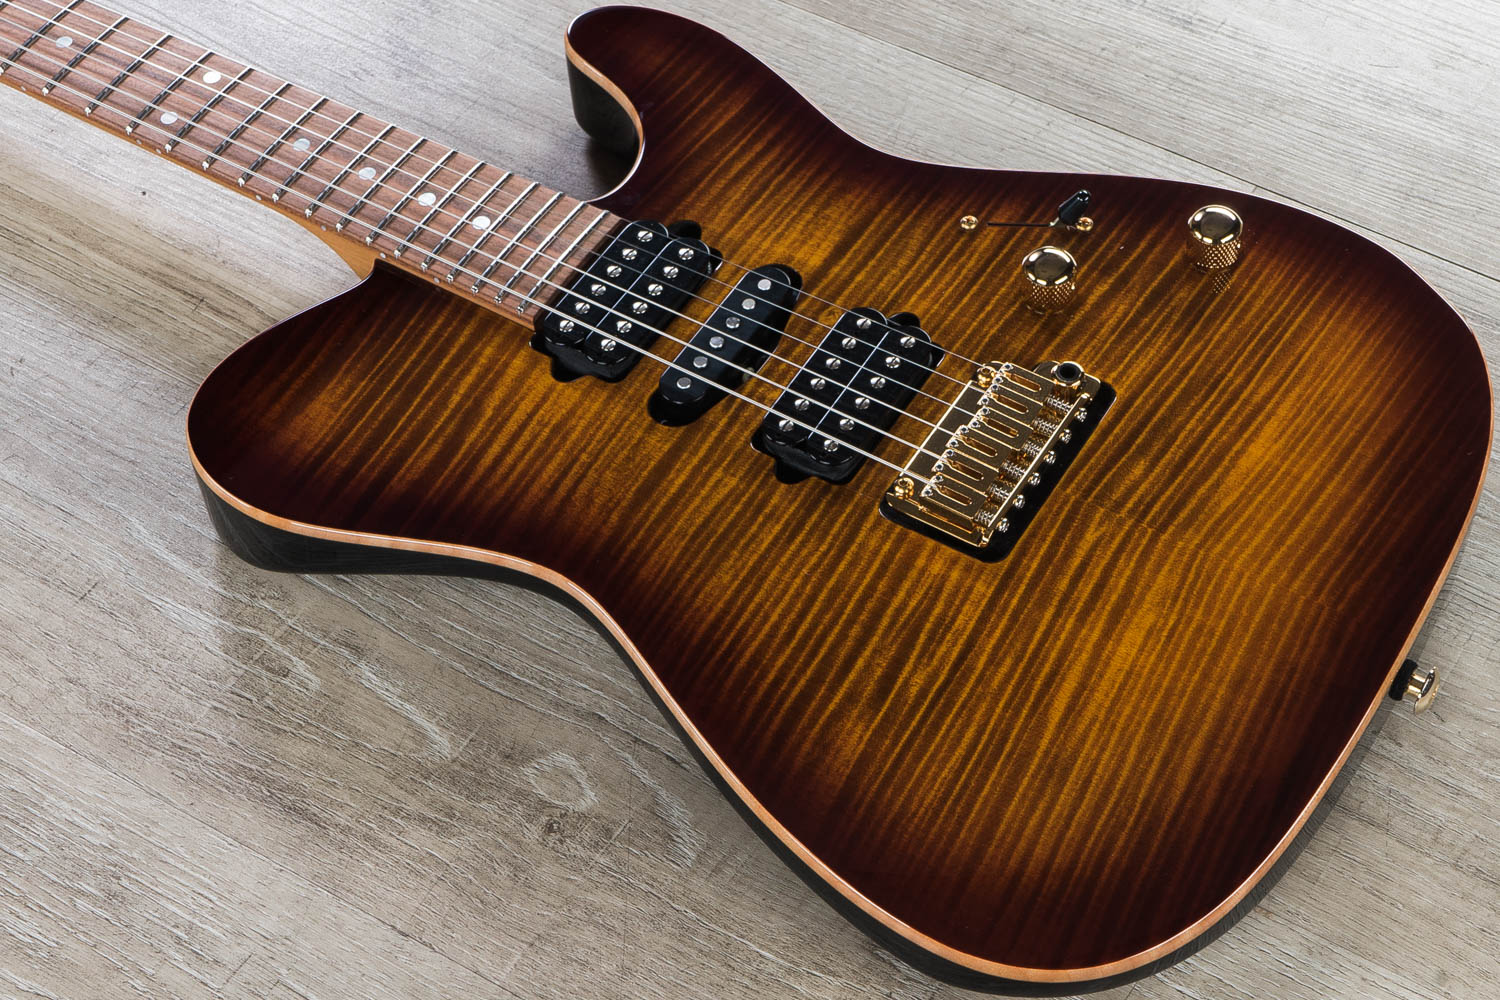 Suhr Modern T Custom Hsh Electric Guitar Flame Maple Top Roasted Maple Neck Hard Case Bengal Burst